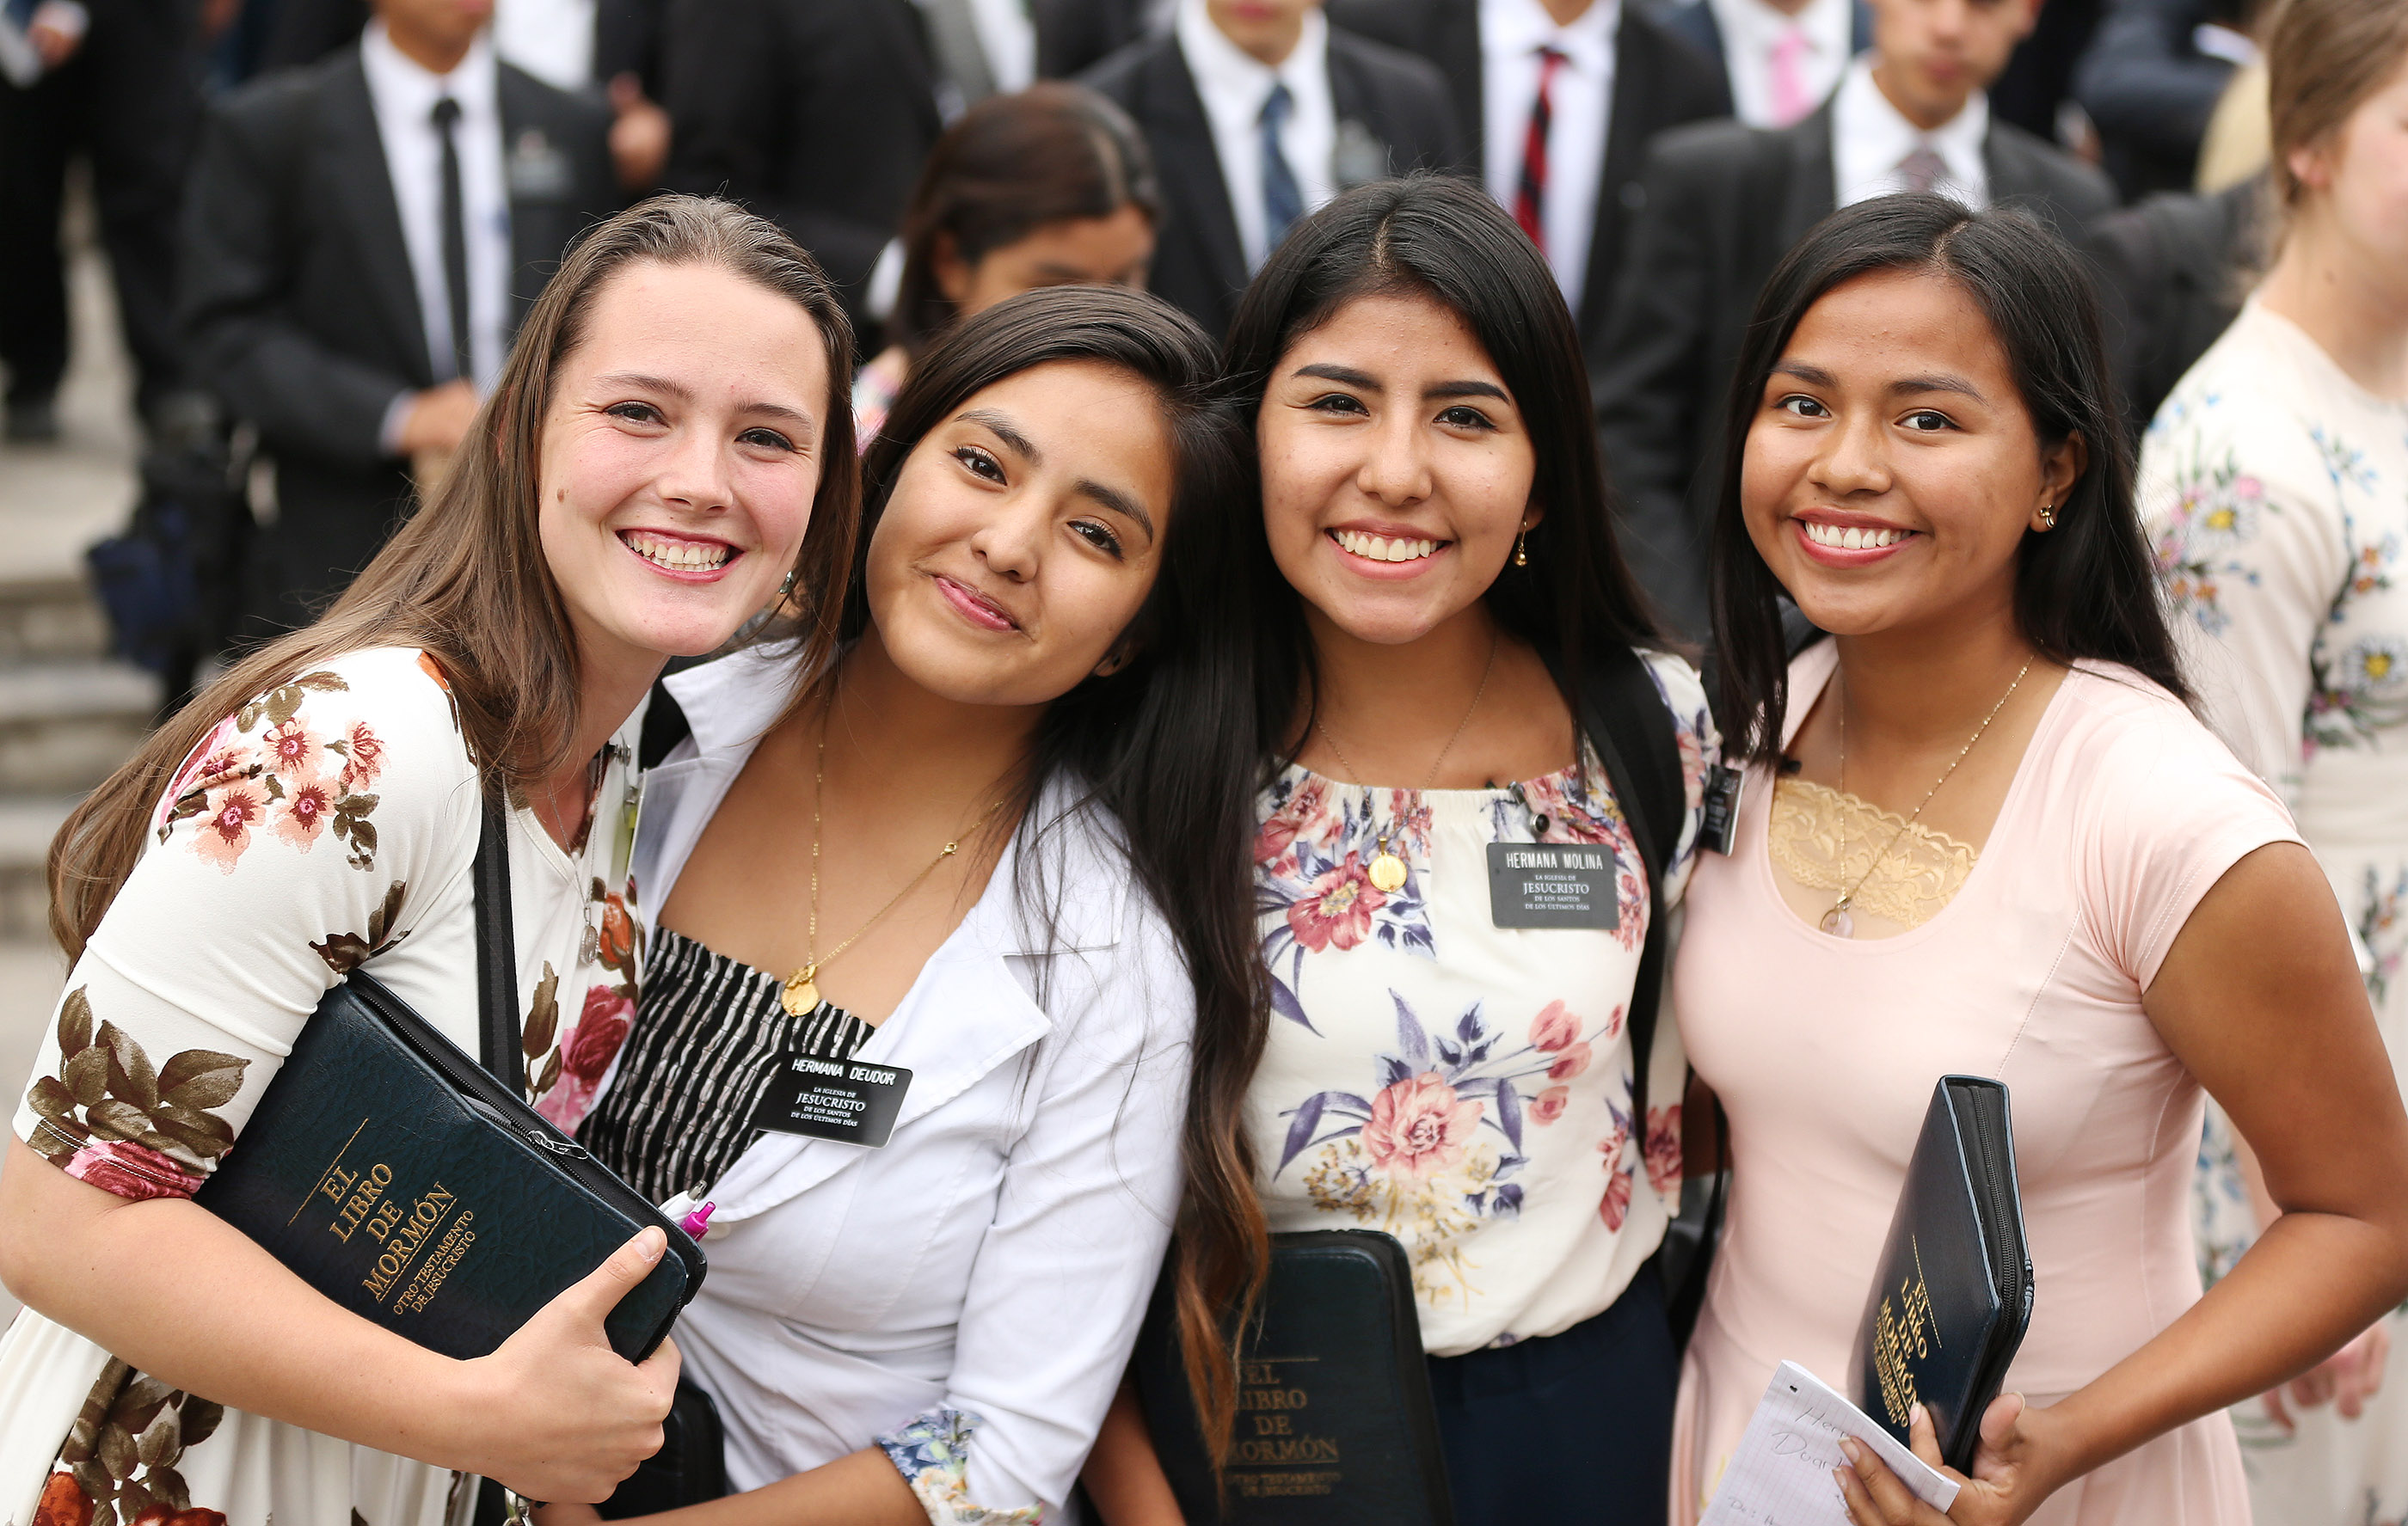 Sister missionaries smile after meeting with President Russell M. Nelson of The Church of Jesus Christ of Latter-day Saints in Lima, Peru on Oct. 20, 2018.